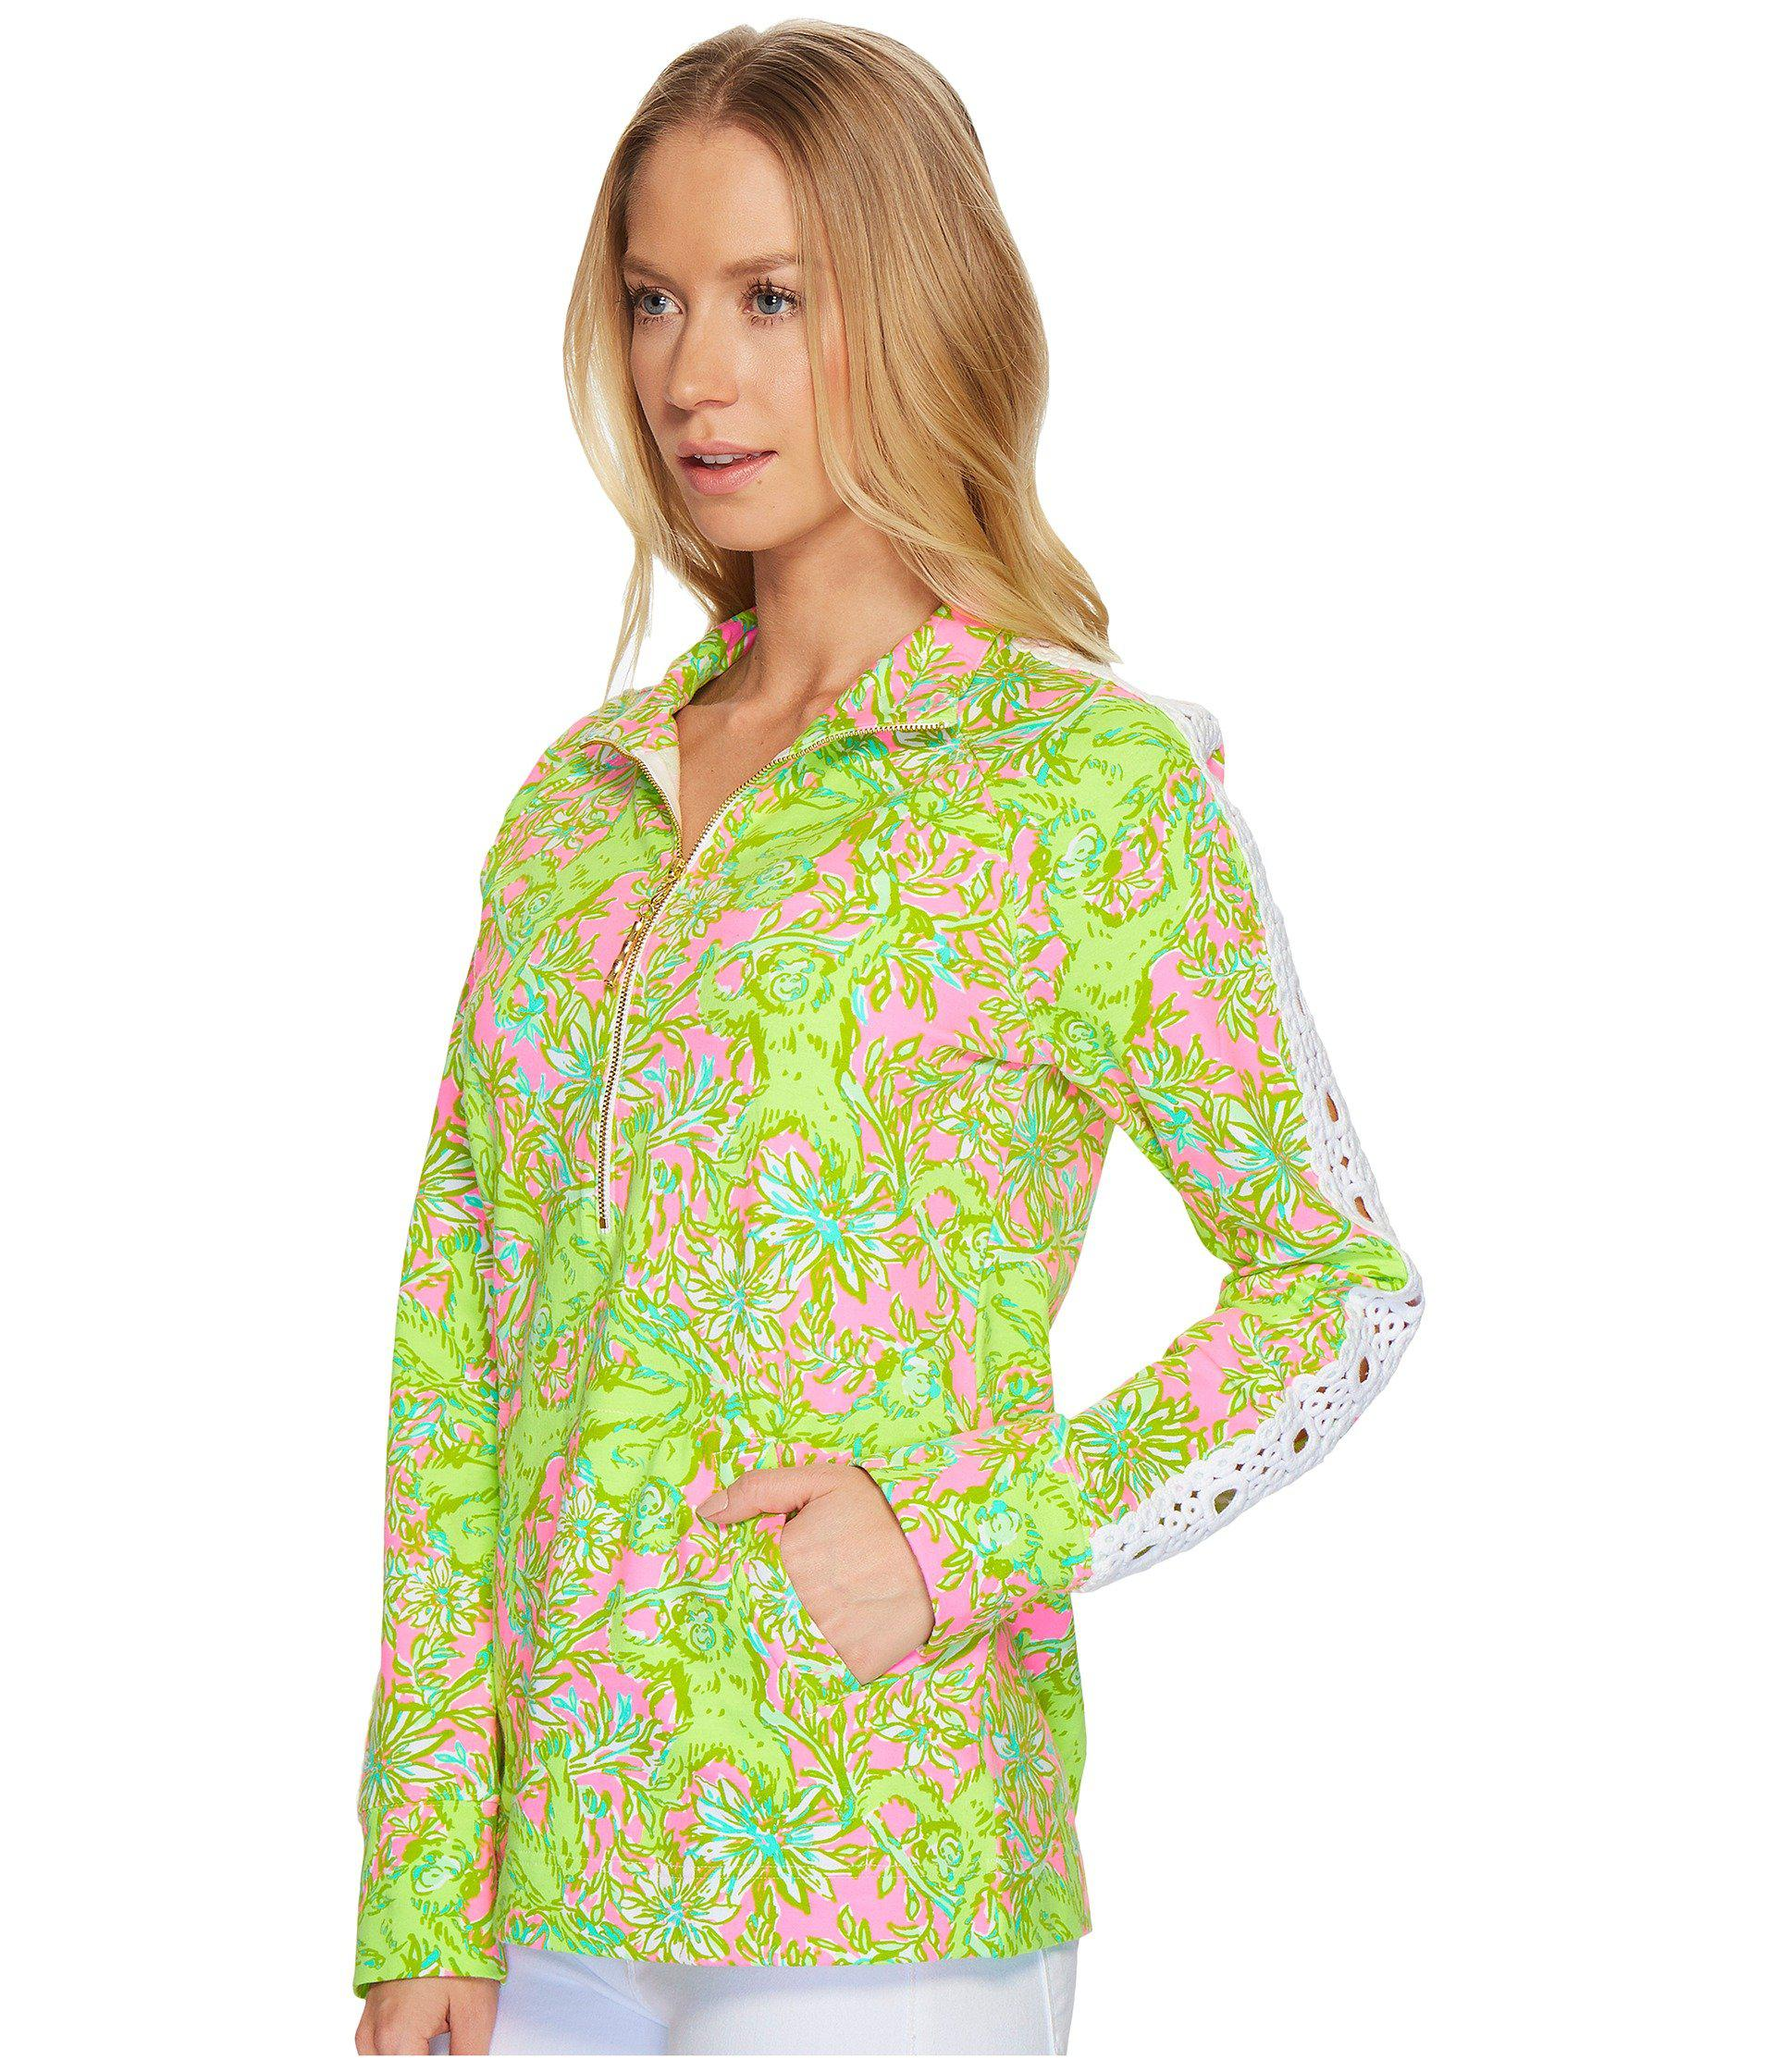 4b902ef226c Lyst - Lilly Pulitzer Skipper Popover W  Lace (pelican Pink Pop-up Chimply  Chic) Women s Sweatshirt in Green